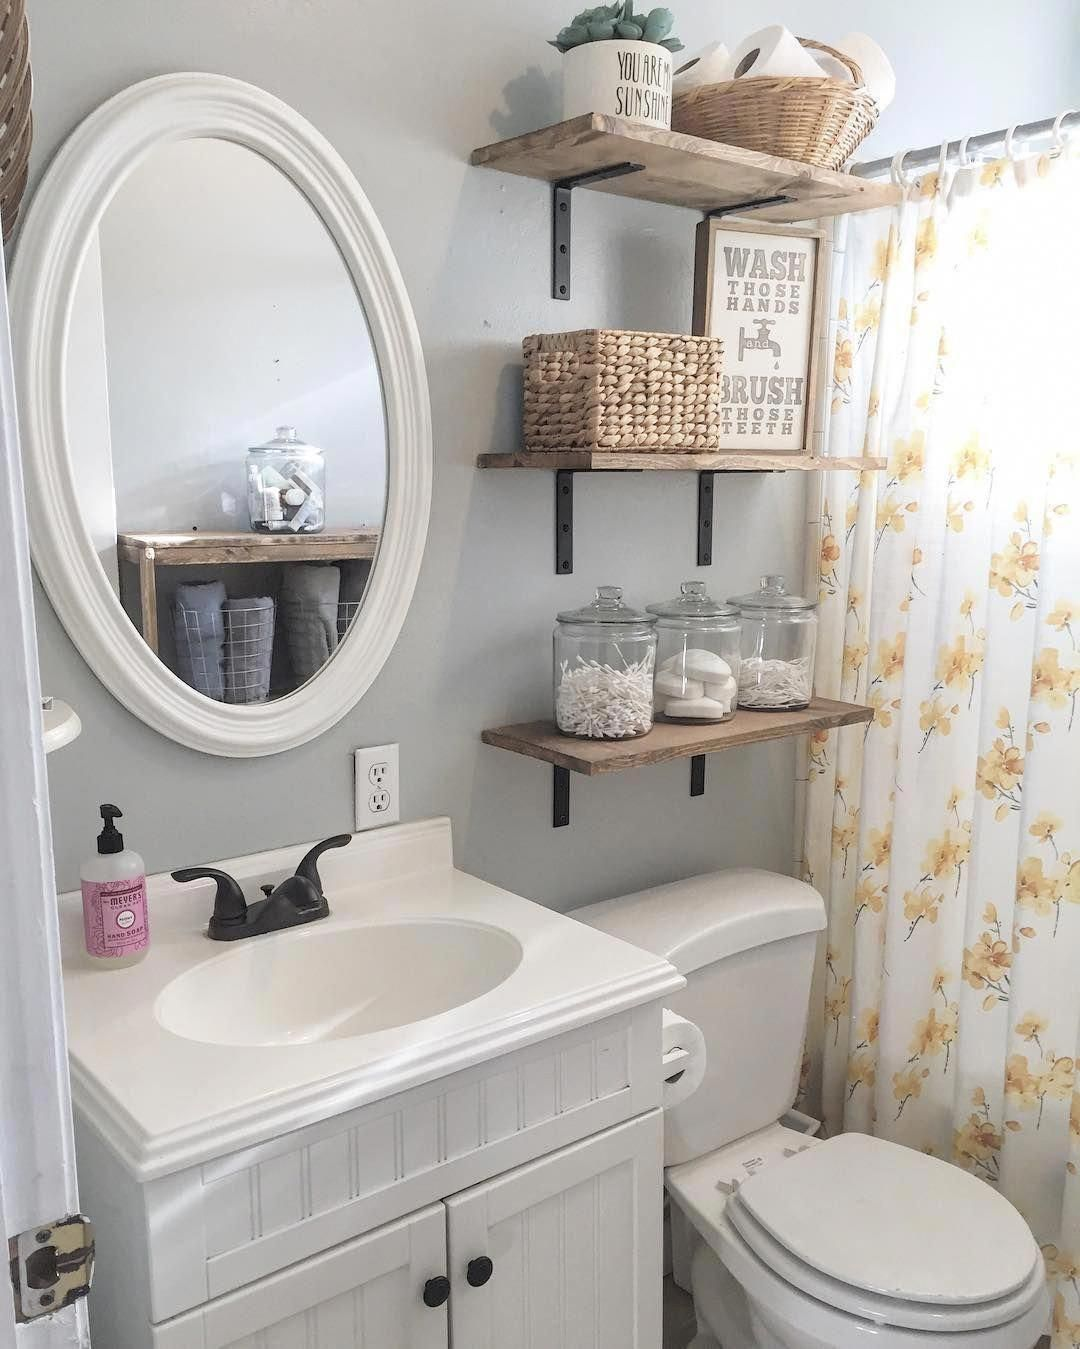 Finding Storage Broadcast In A Little Bathroom Doesn T Have To Be A Chore These Handsome And U Small Bathroom Decor Small Bathroom Remodel Top Bathroom Design